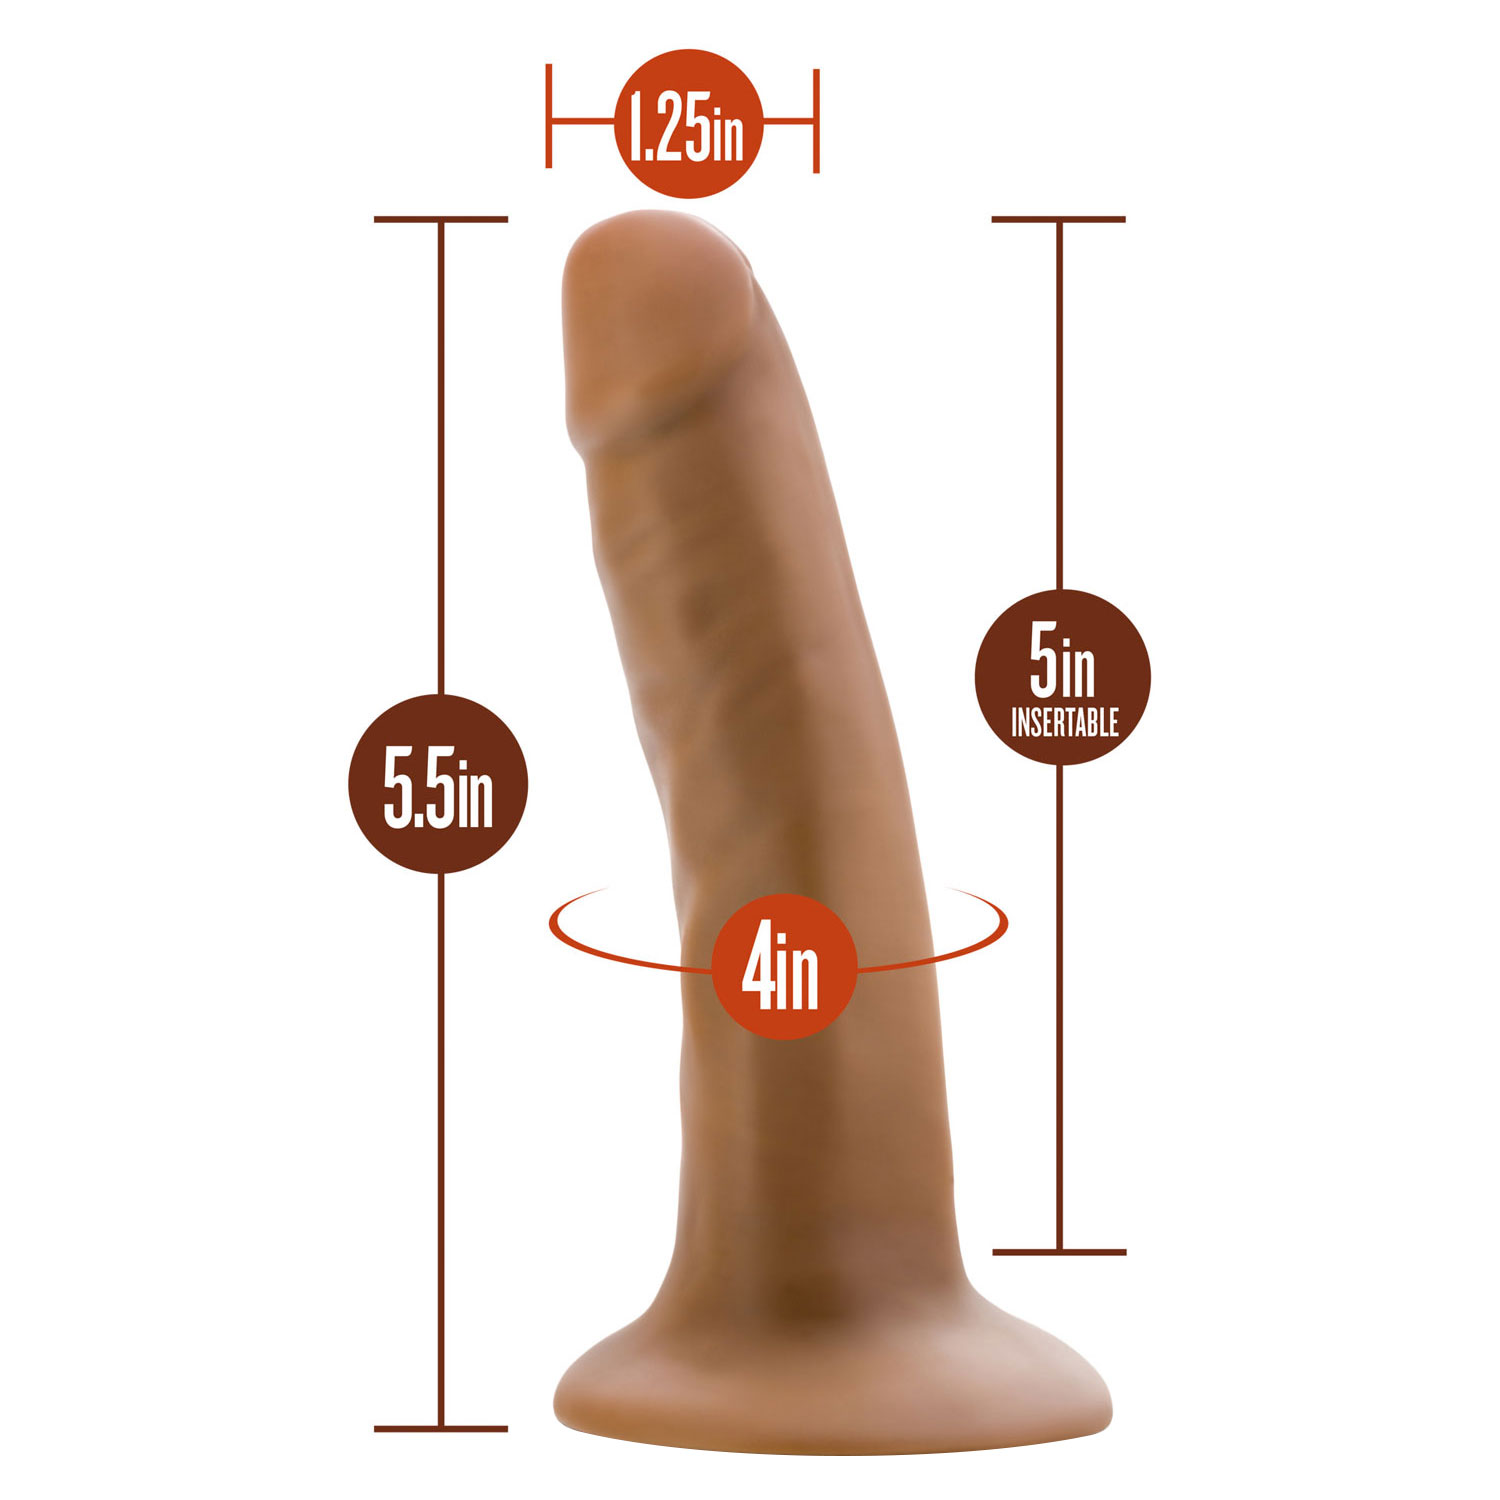 Dr. Skin 5.5 Inch Cock - Measurements